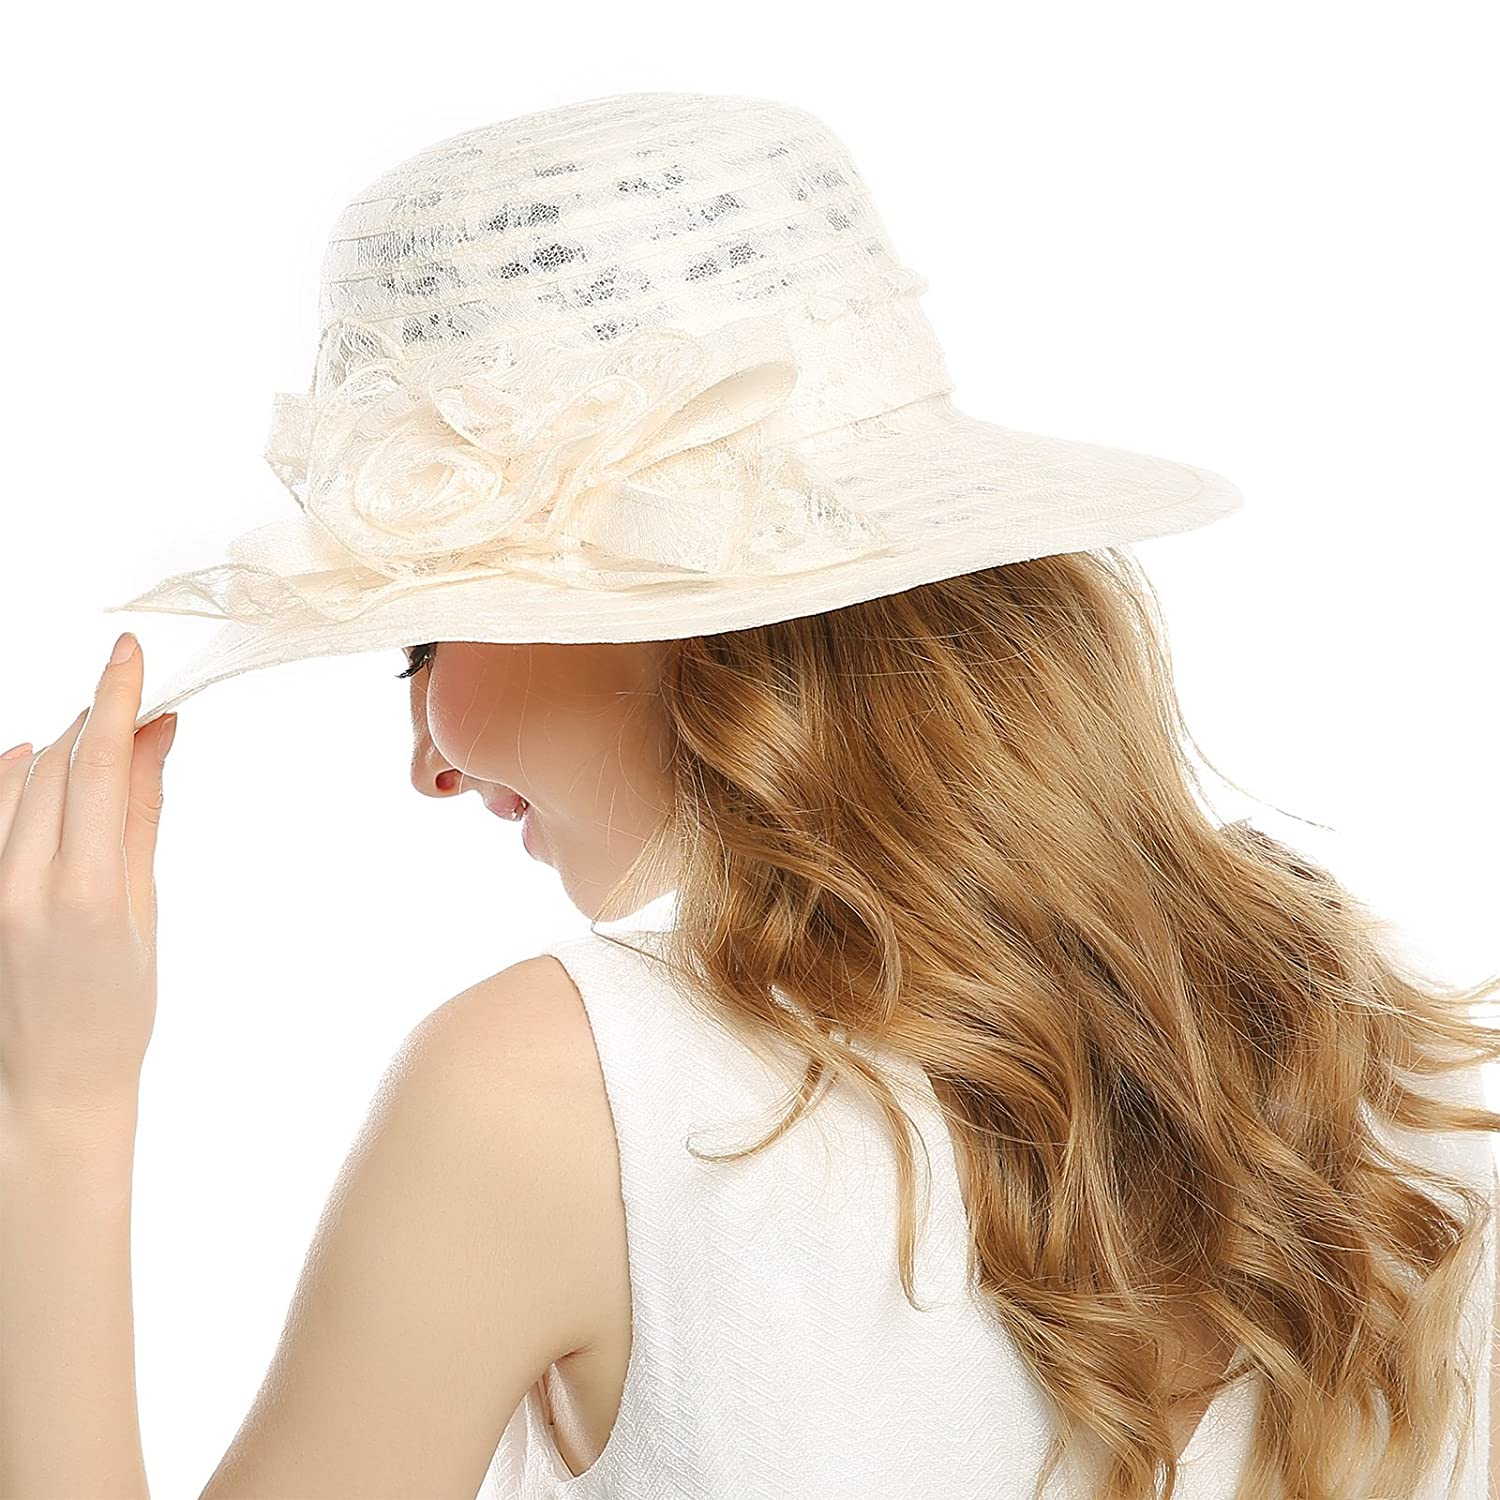 fab83728 WELROG Women's Kentucky Derby Church Hat - Foldable Floppy Dress Hats  Fascinators Fancy Wide Brim Tea Party Wedding Sun Hats (Beige #3) at Amazon  Women's ...